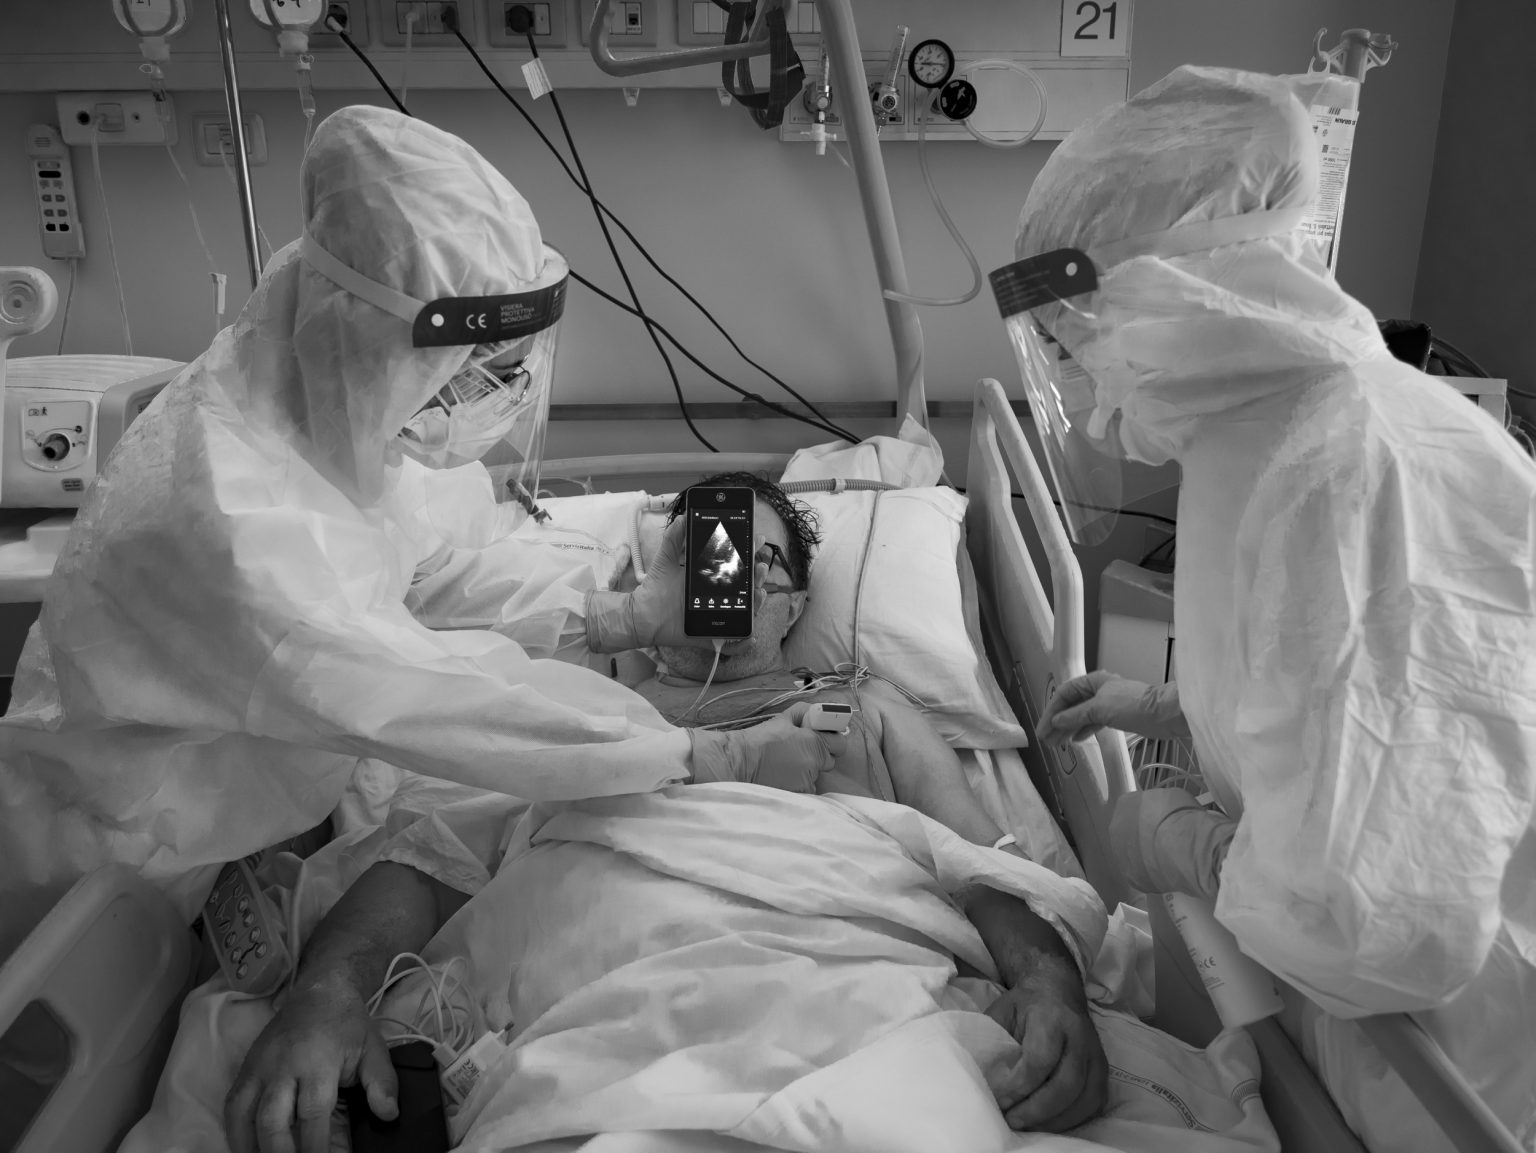 The General hospital. Respiratory Illnesses and Diseases Complex Facility. Subintensive Care Unit. Pulmonology. The area next to the room where Covid-19 patients are hospitalized in critical conditions. A lung ultrasound. Modena, Italy,